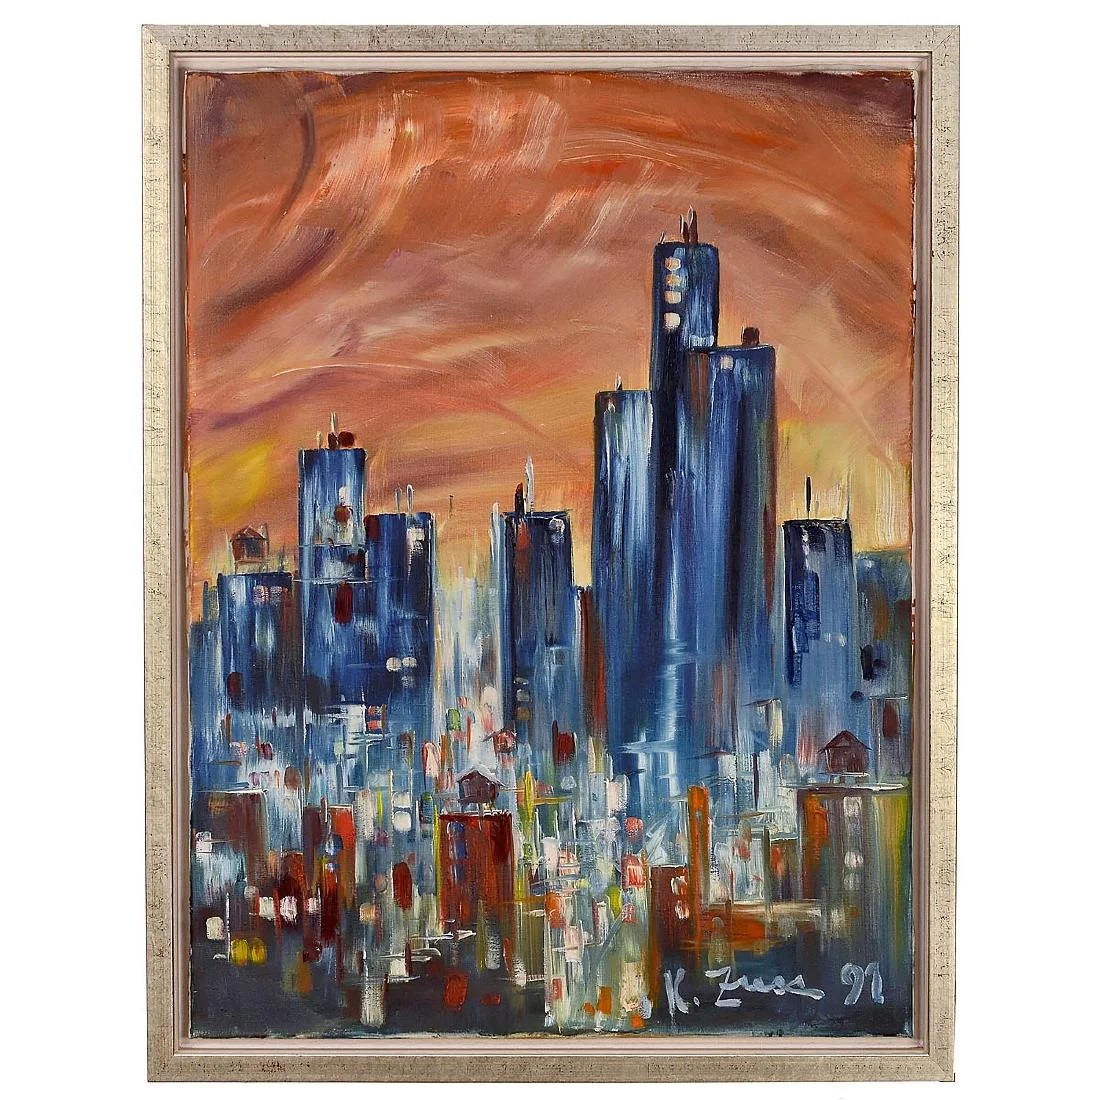 Fotoleinwand 60x80 Futuristic Cityscape By Konrad Zuse 1991 Nov 11 2017 Auction